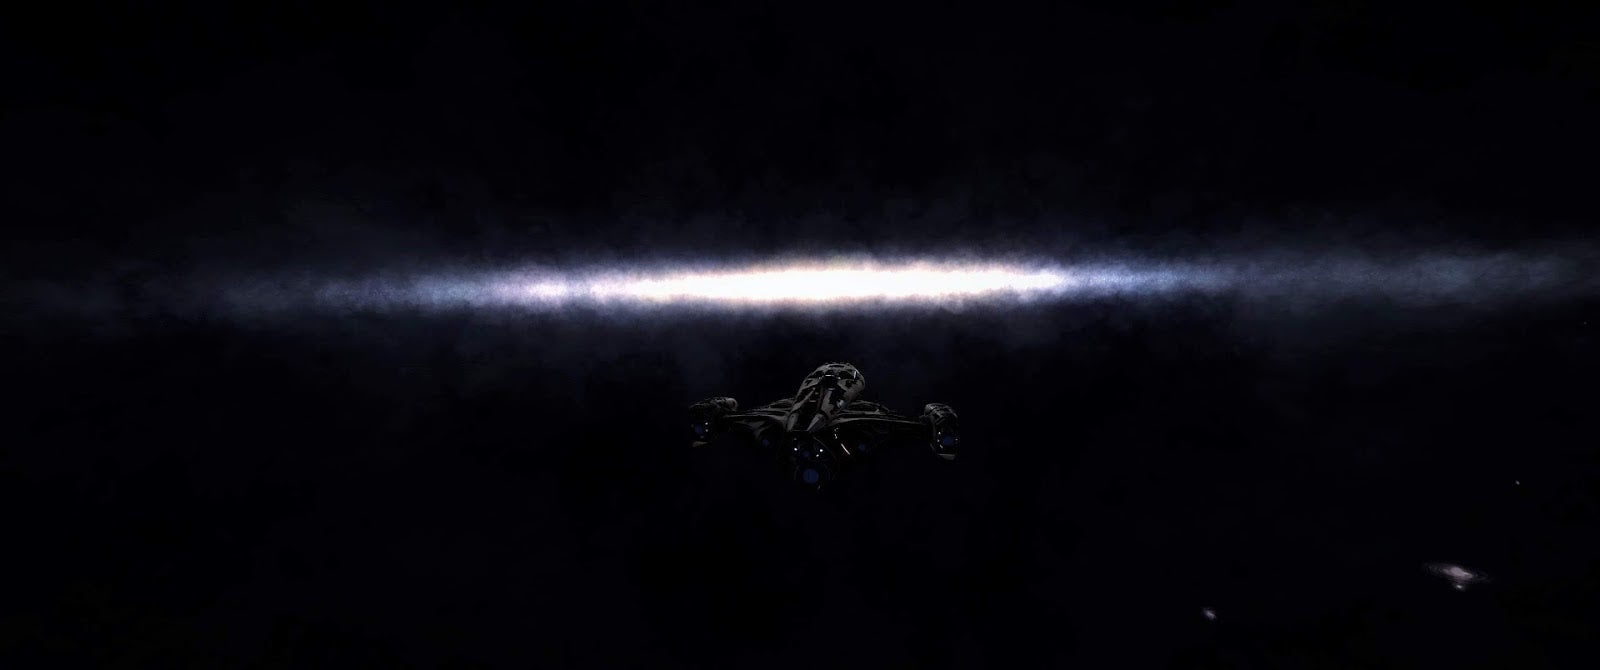 Elite Dangerous Players Are Rescuing A Player Who's Been Stranded In Space Since November